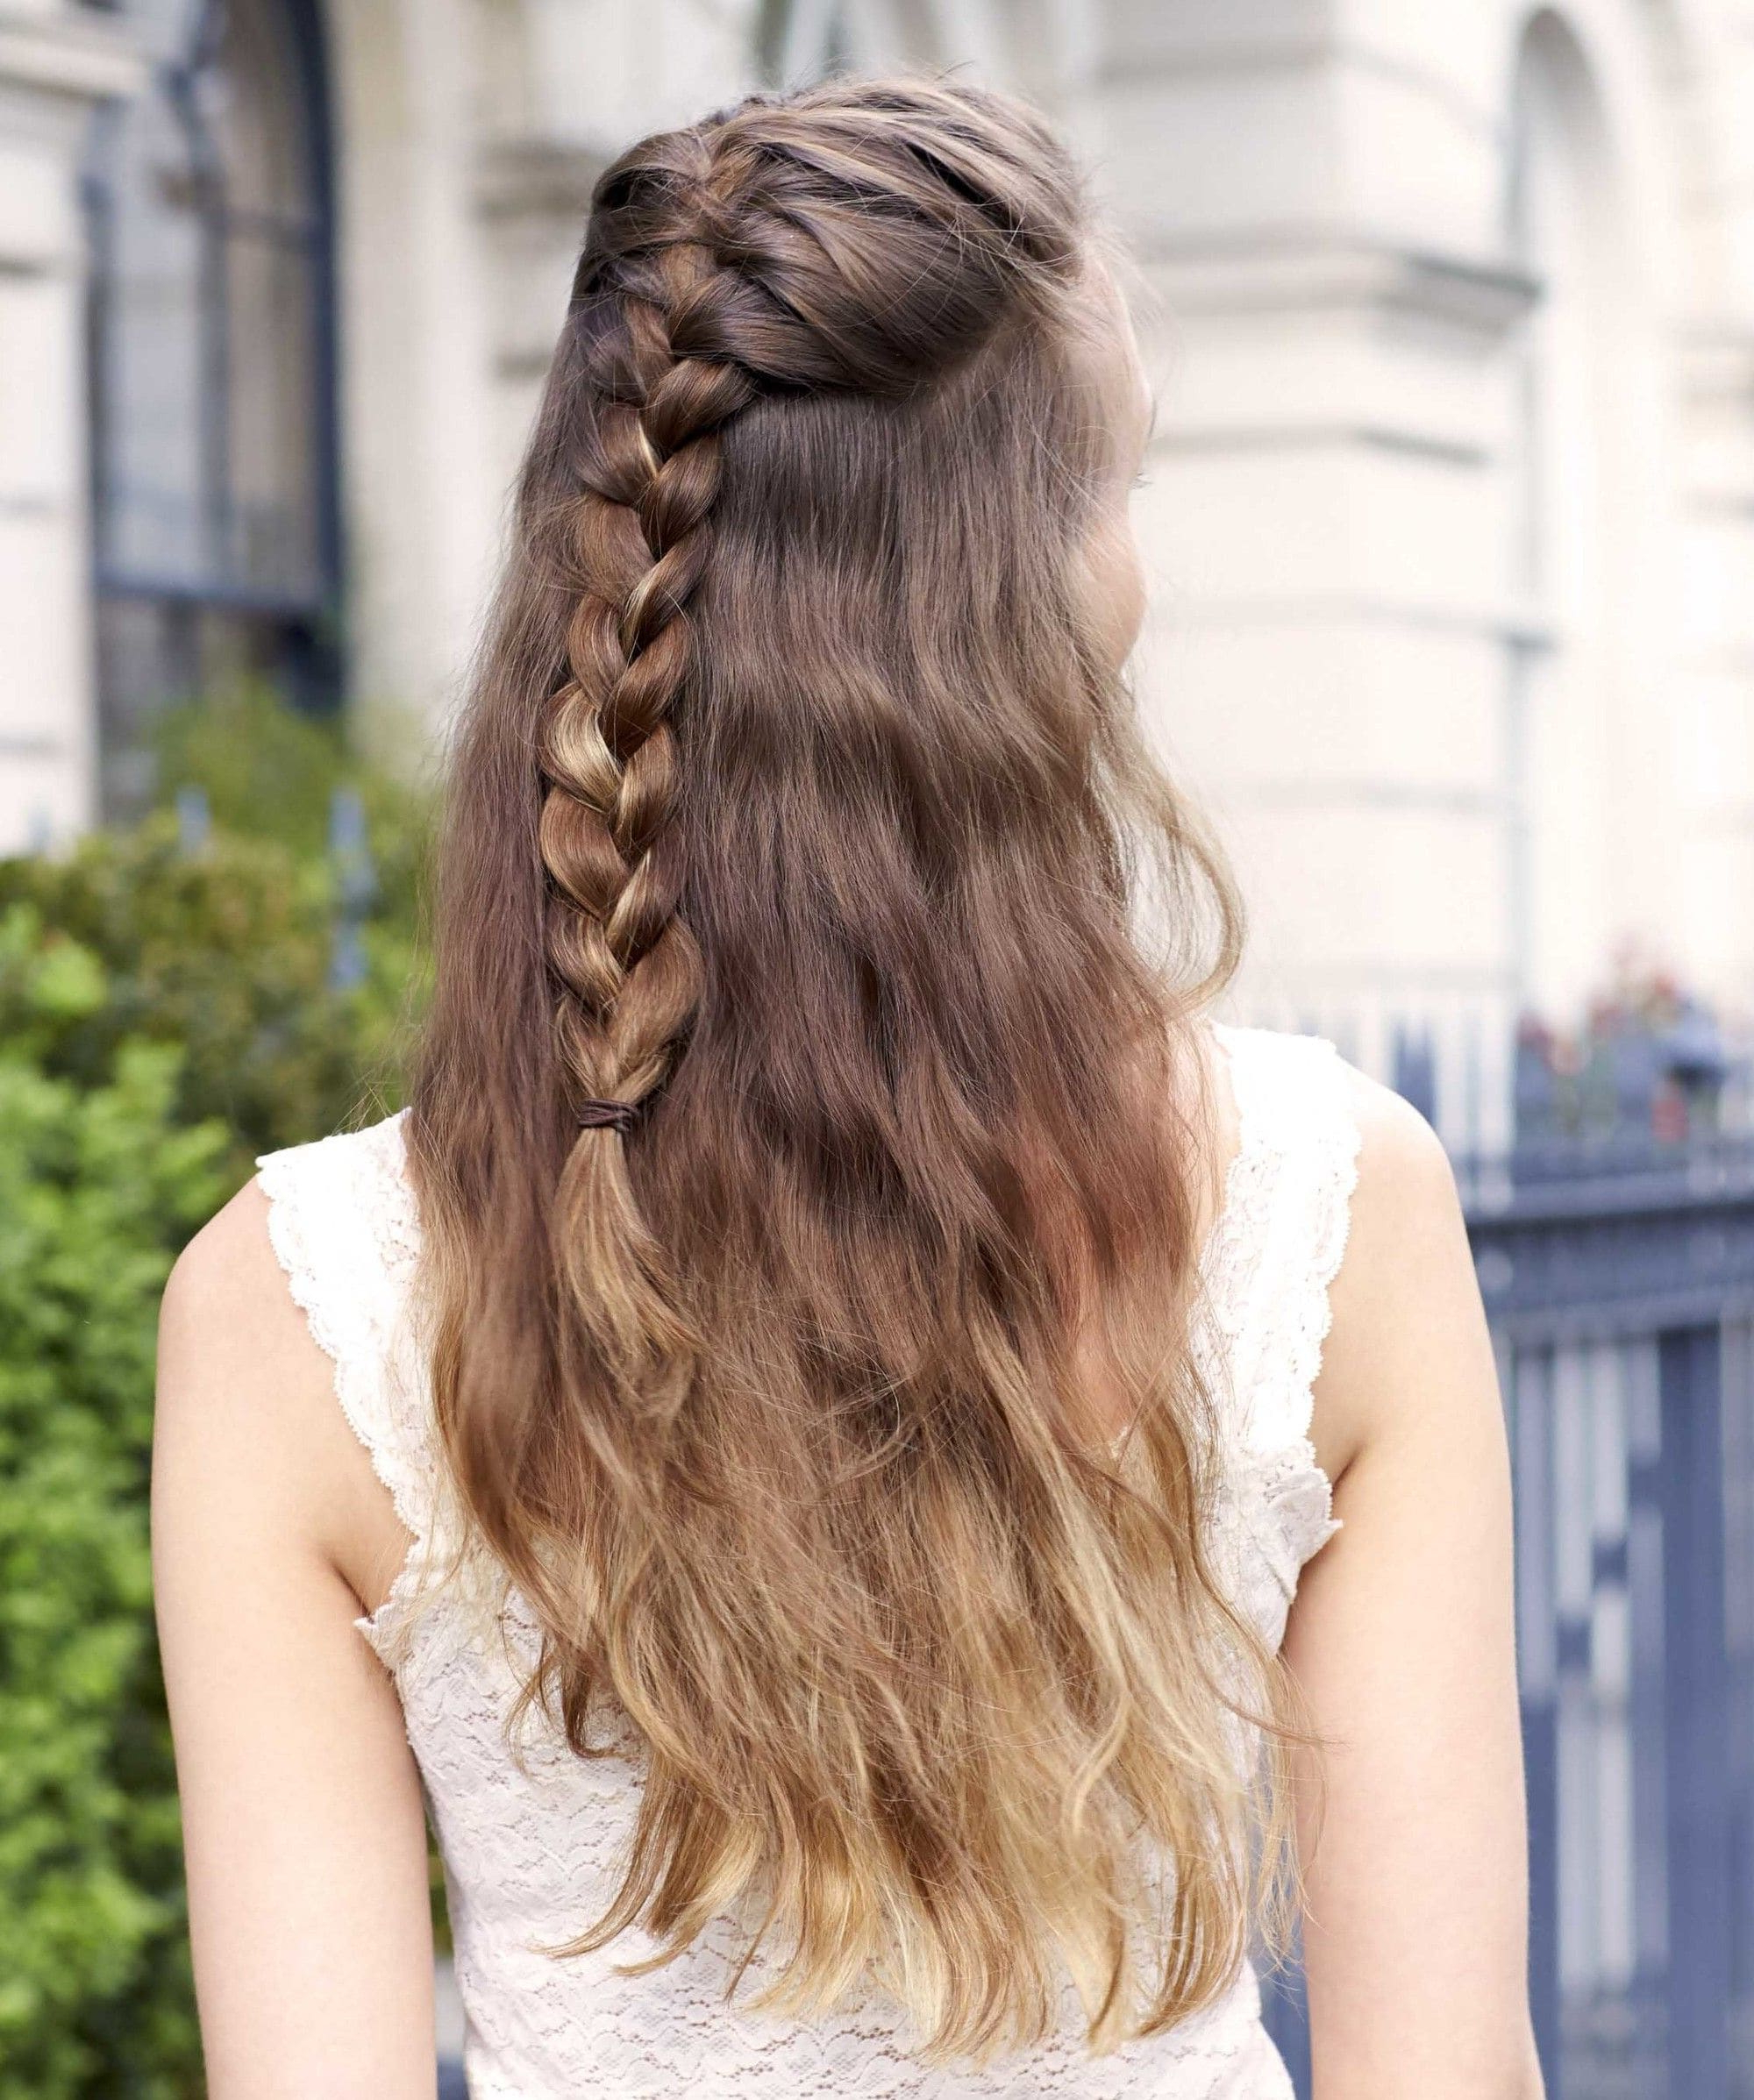 20 Easy Braids For Long Hair To Up Your Game In No Time In Most Recent Thick Wheel Pattern Braided Hairstyles (View 17 of 20)